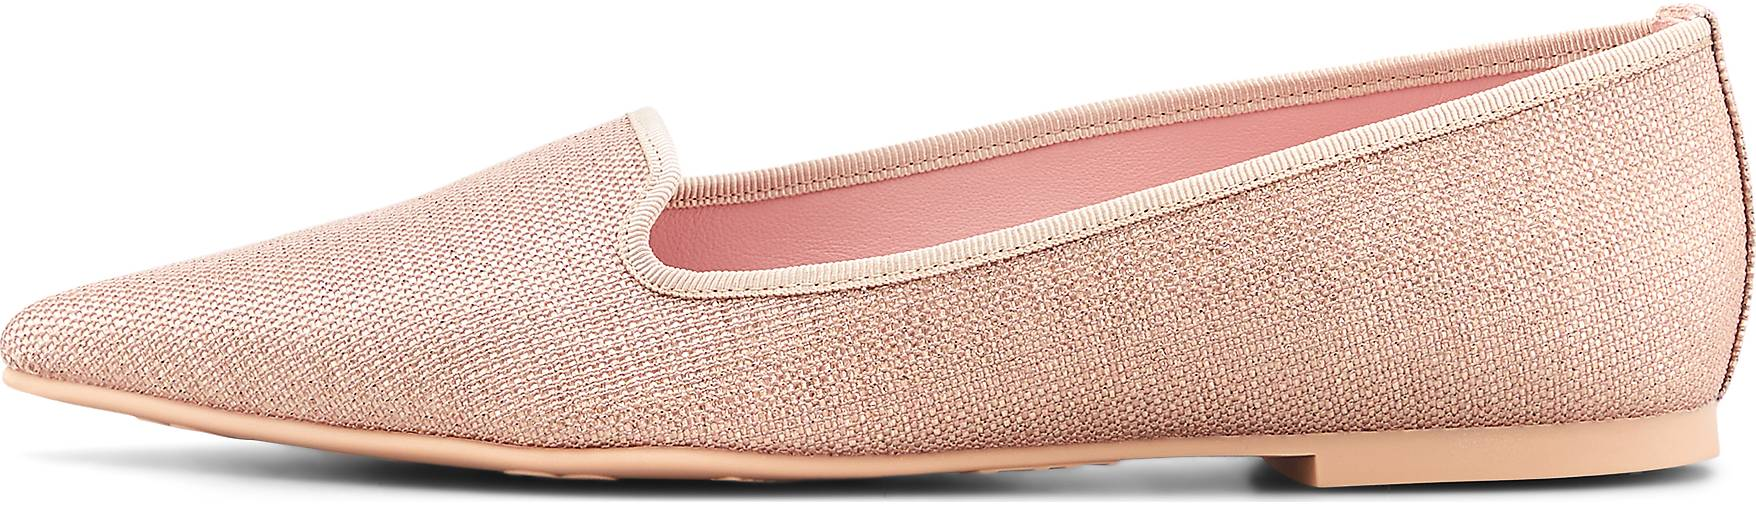 Pretty Ballerinas Klassik-Slipper